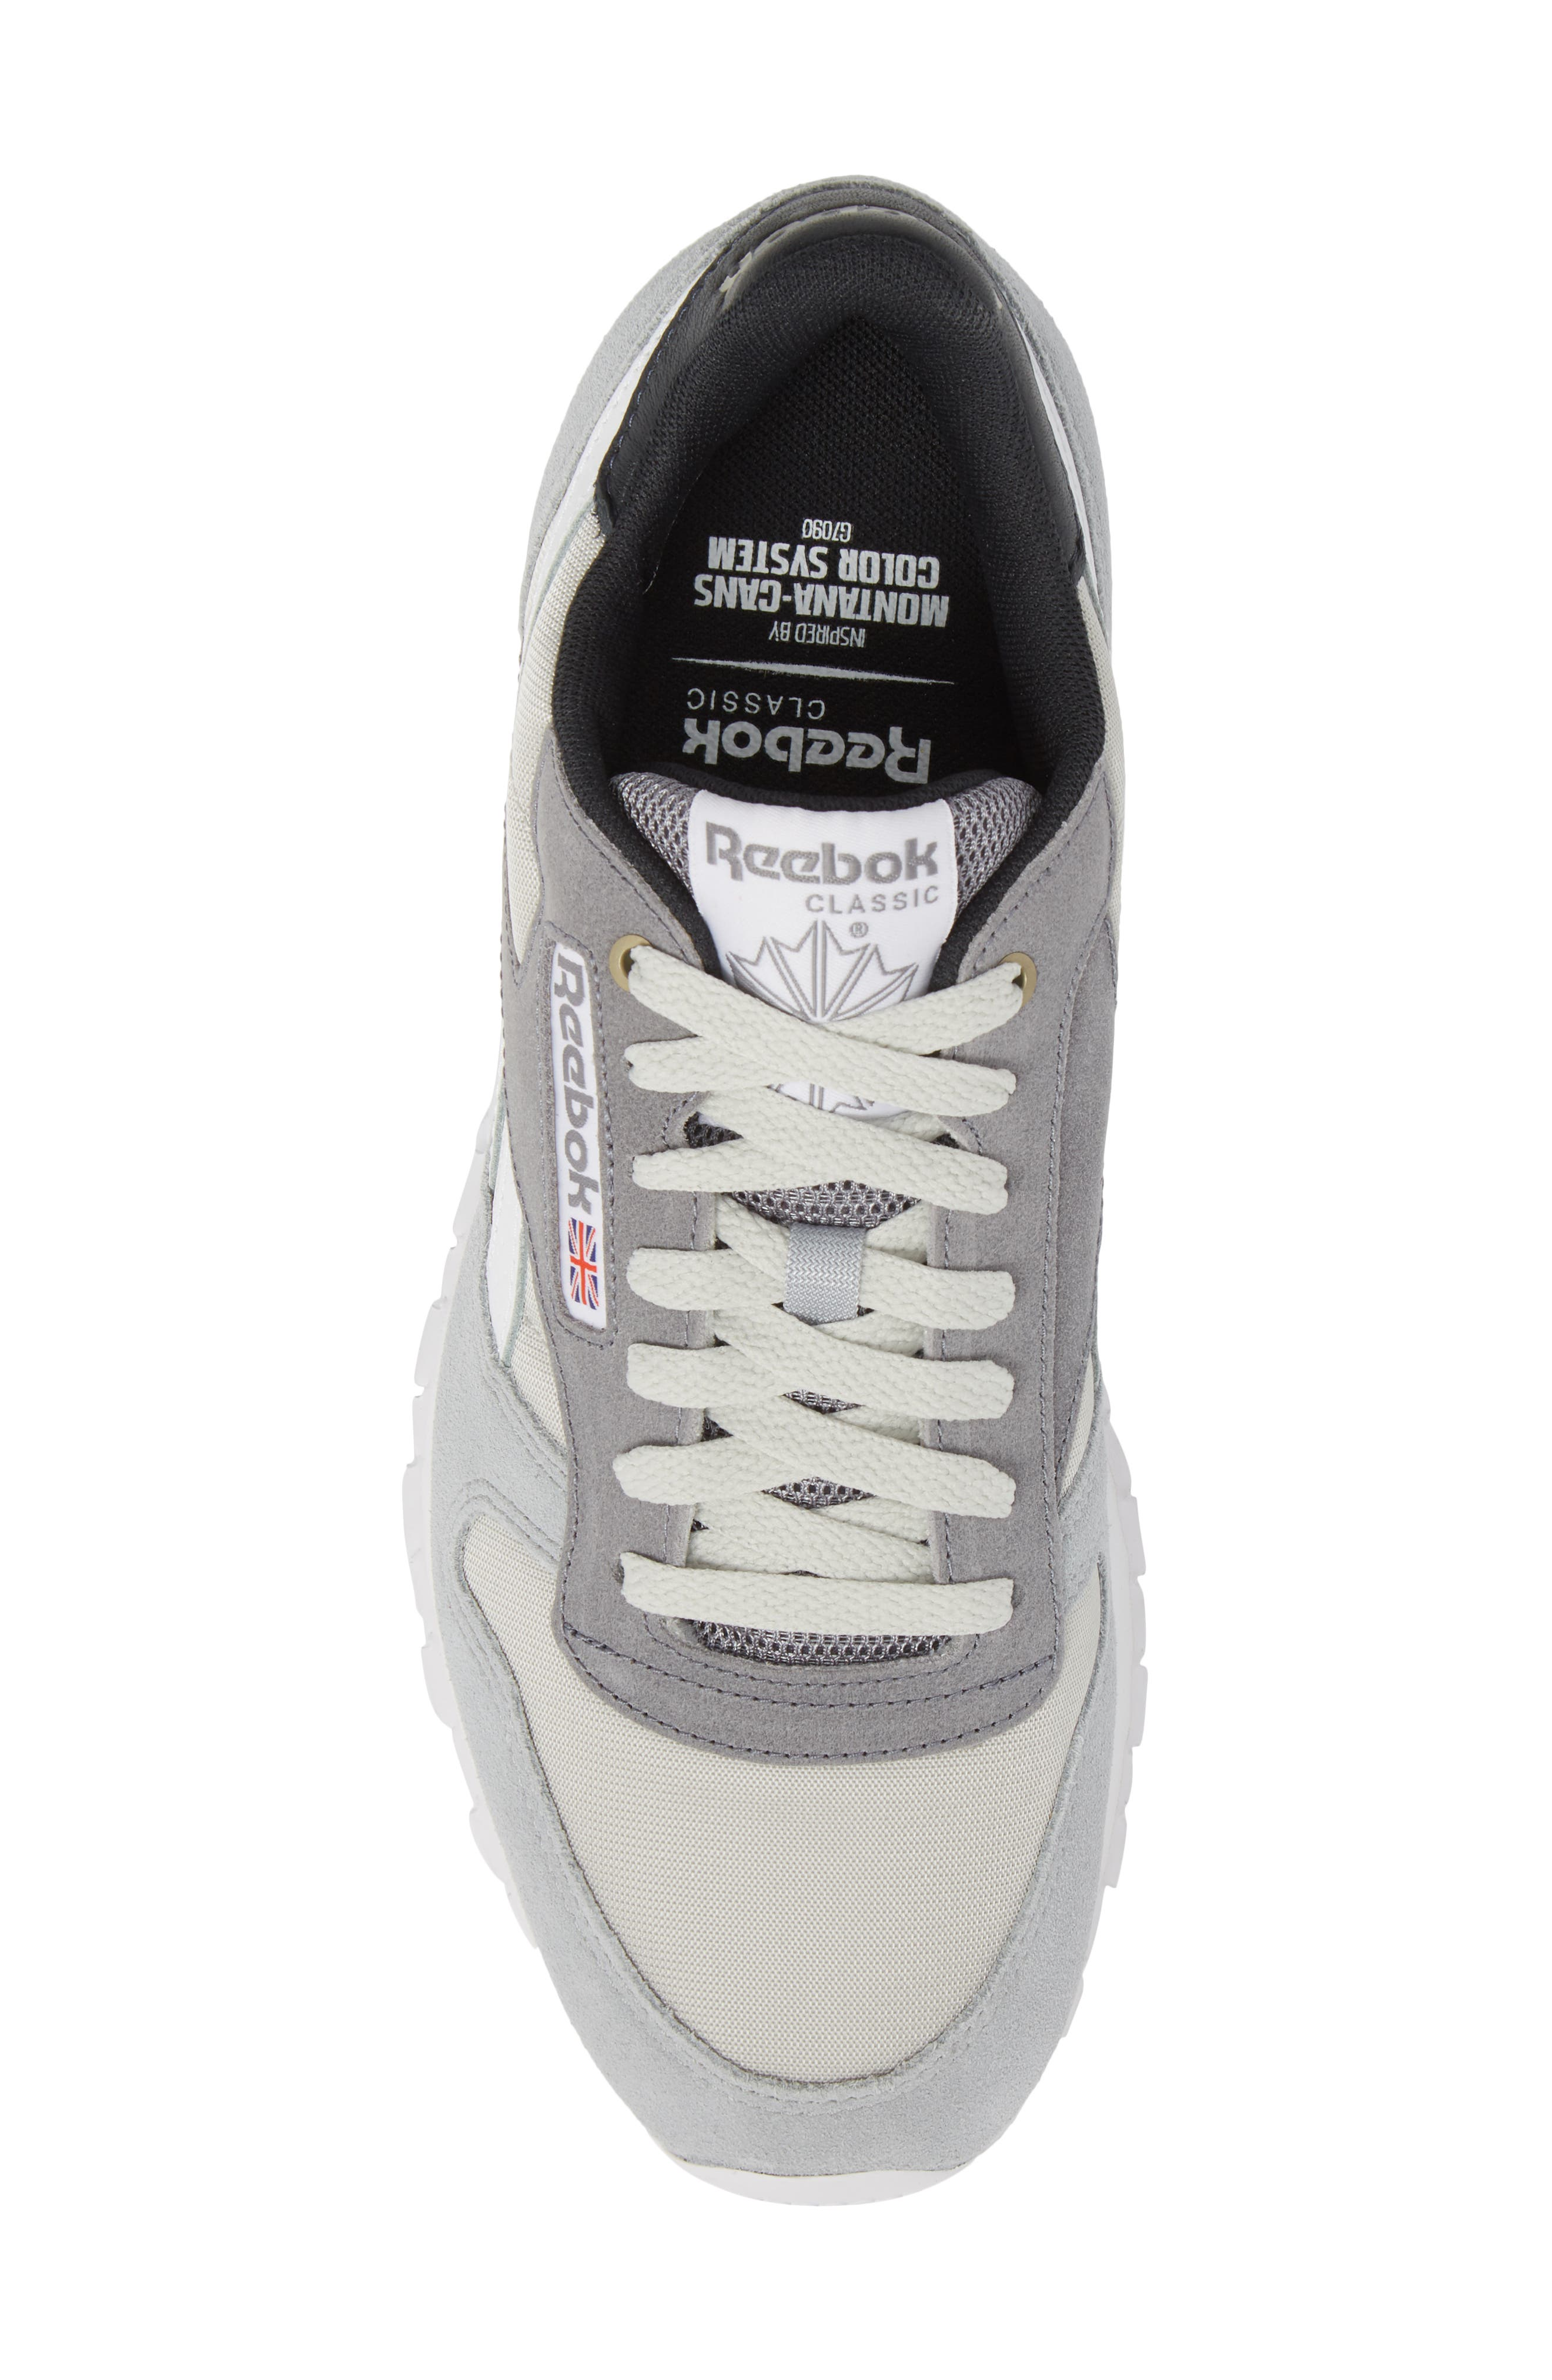 Classic Leather MCCS Sneaker,                             Alternate thumbnail 5, color,                             Grey/ White